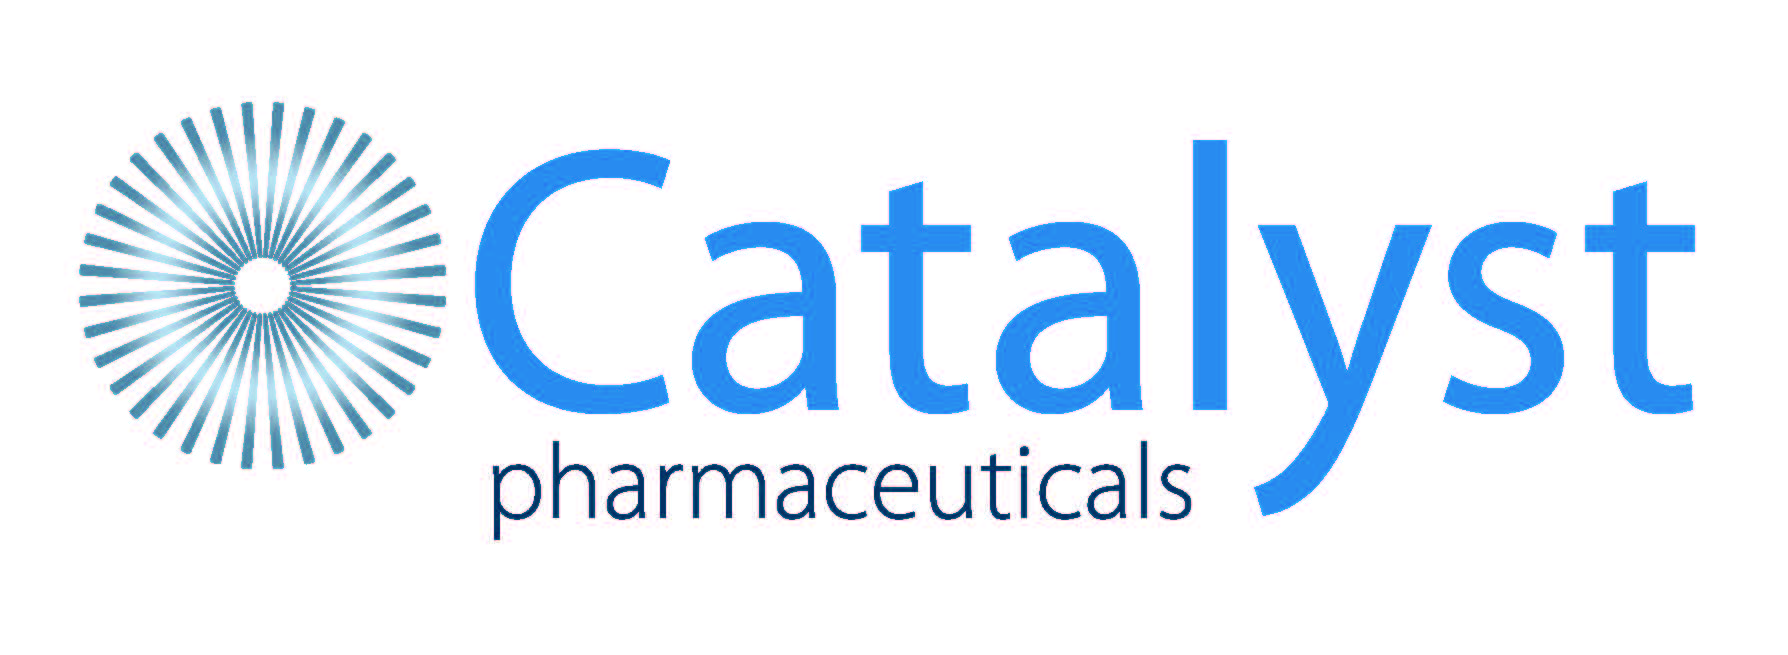 Catalyst Pharma Blog